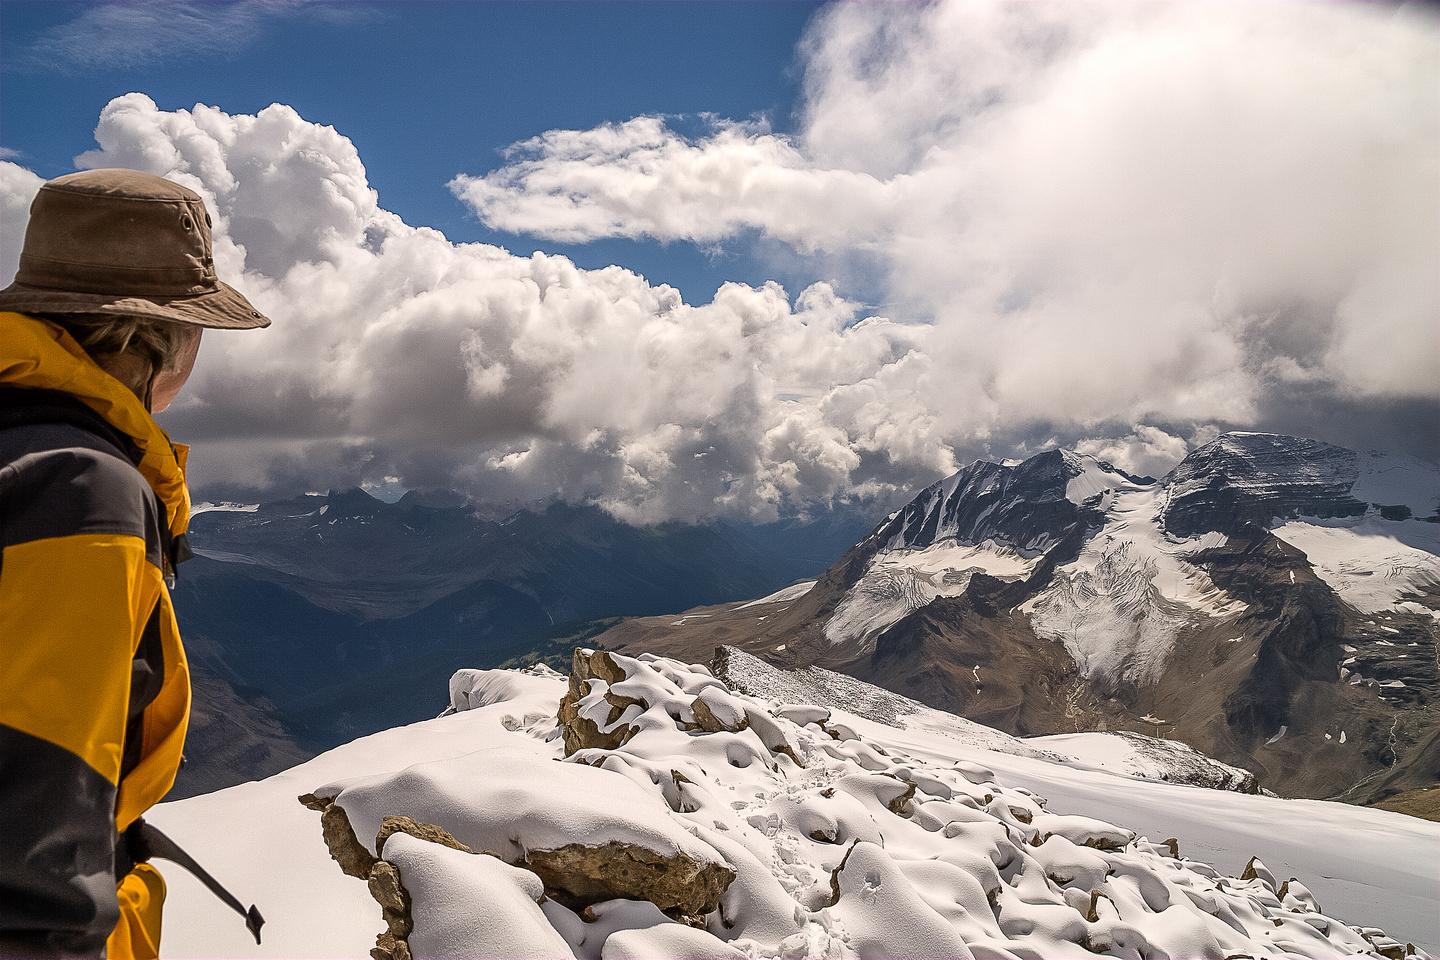 Bob on the summit of Mount McArthur, looking at the Presidents.